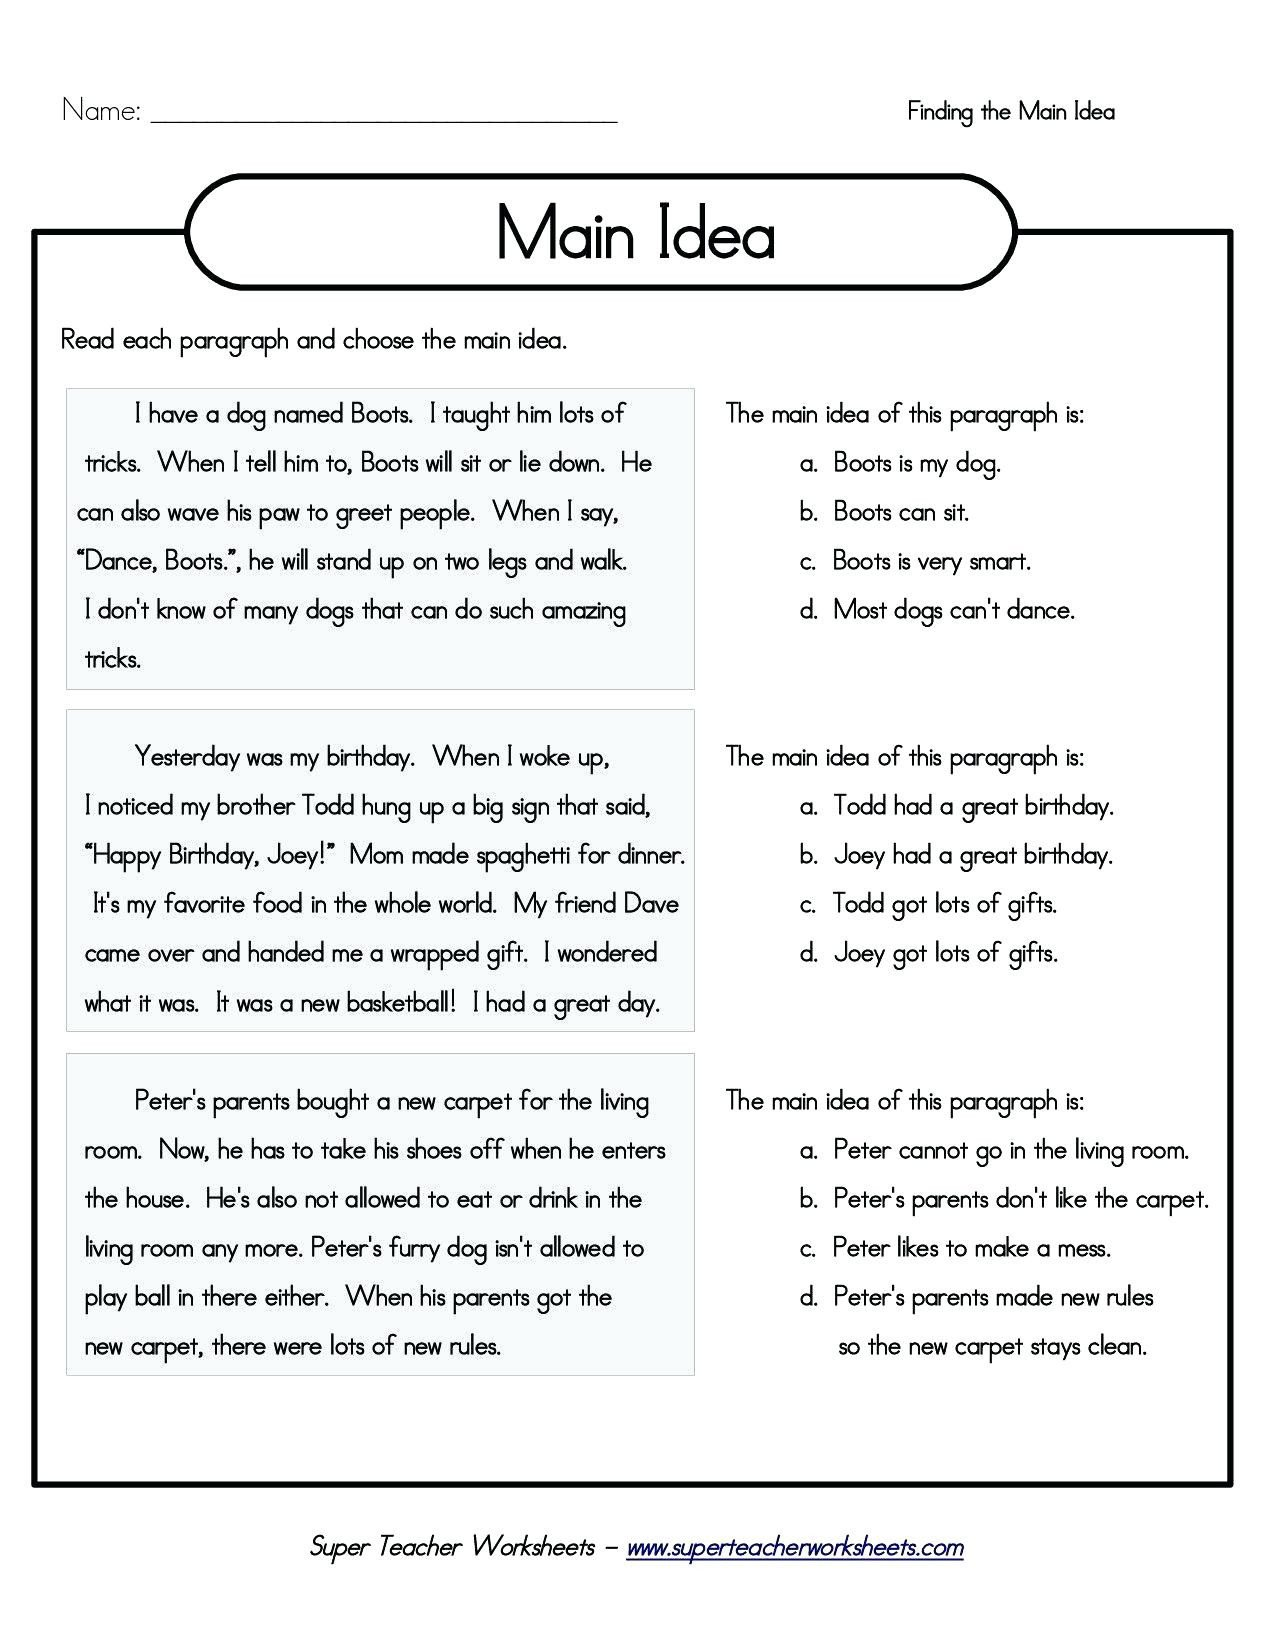 Kindergarten Main Idea Worksheets 5th Grade Main Idea Worksheets Printable Grade Main Idea